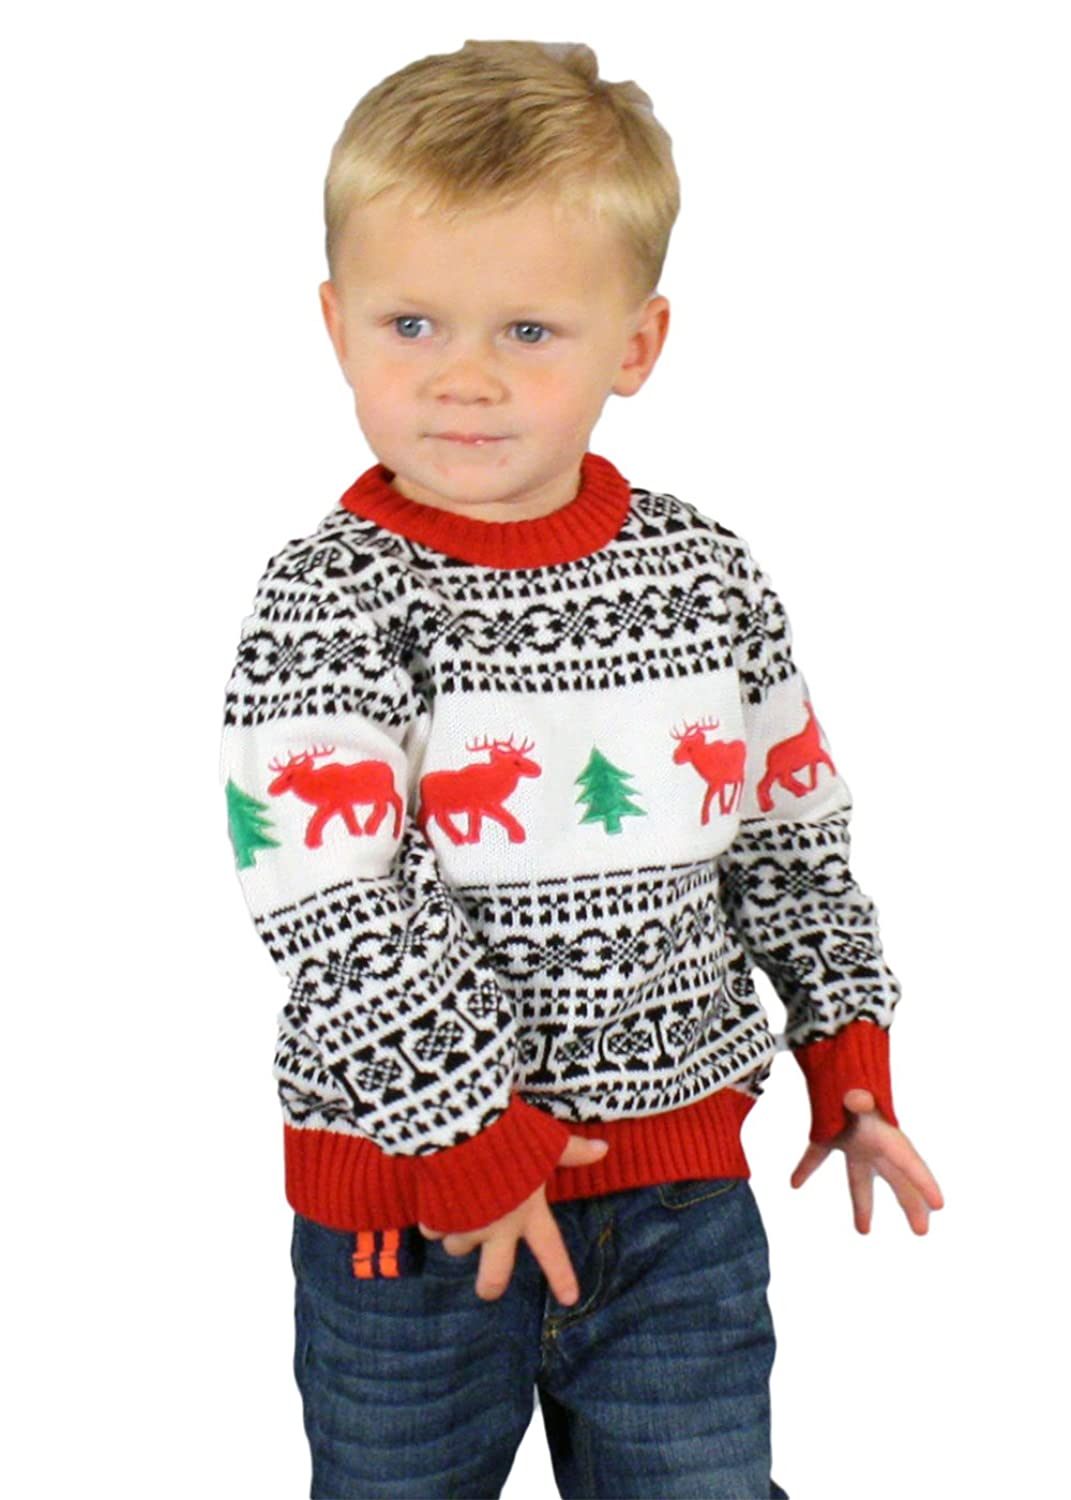 Amazon.com: Holiday Reindeer Sweater in Antique - Children's Ugly ...